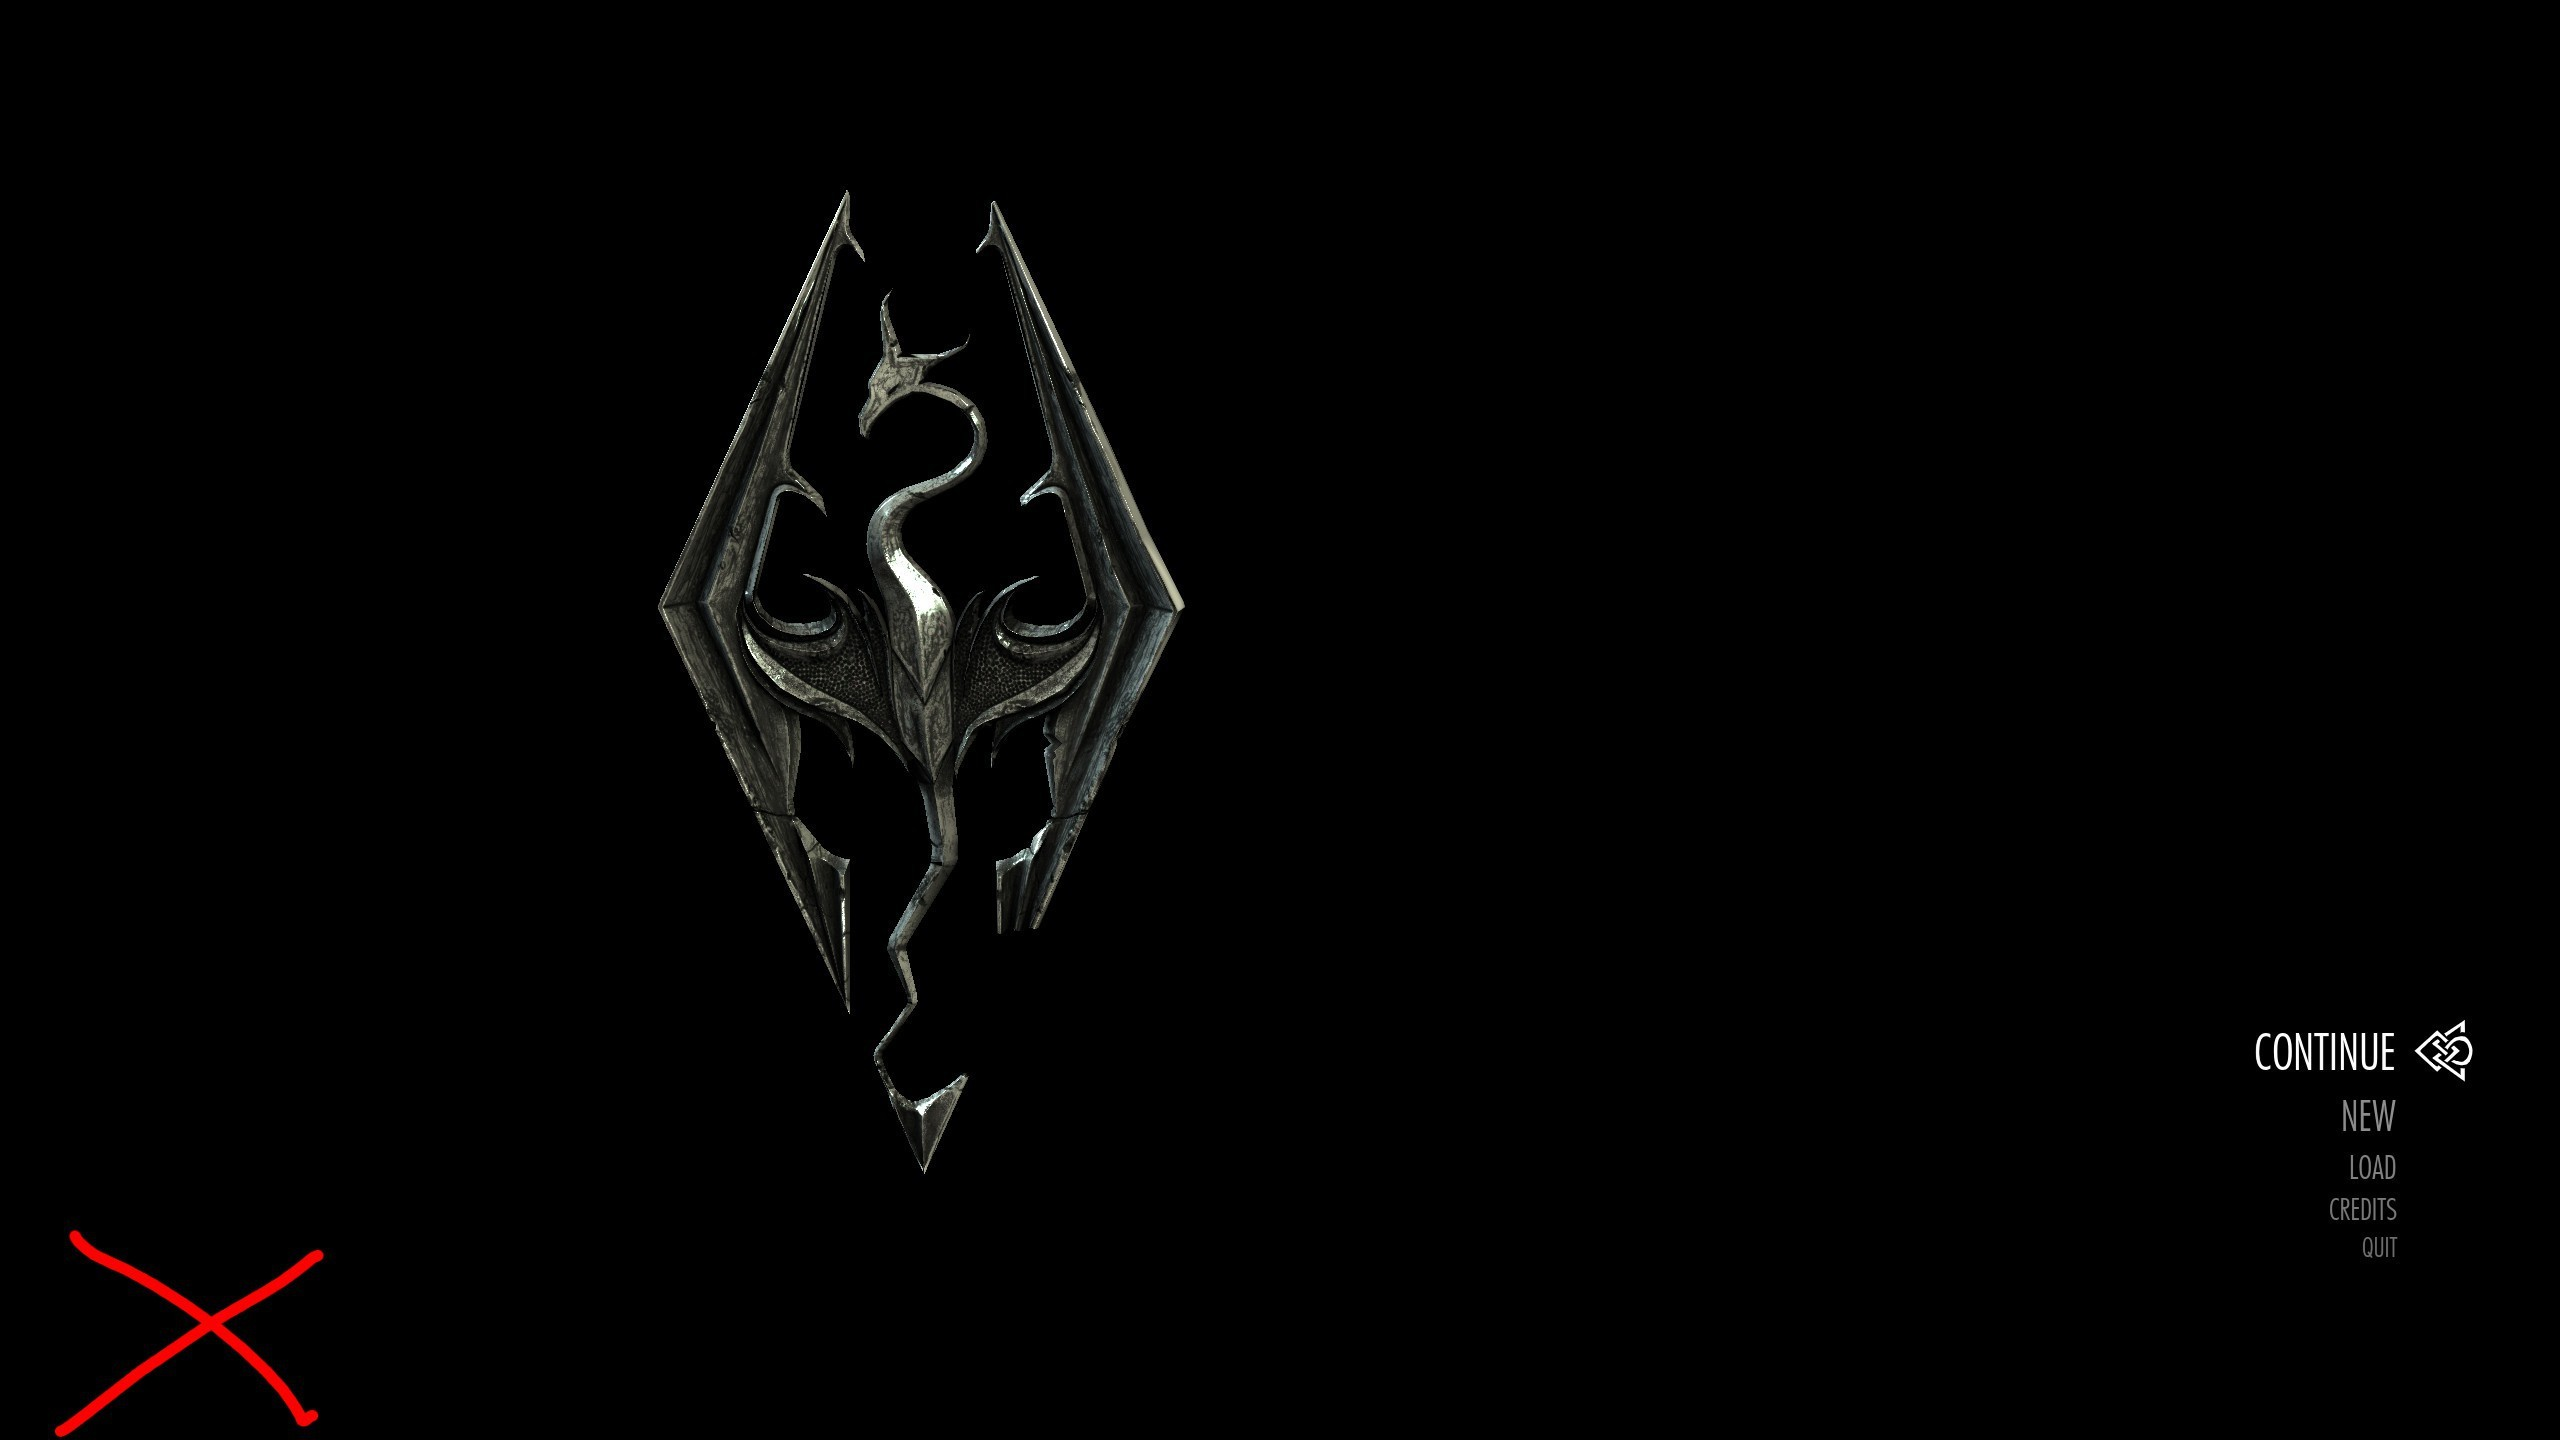 Res: 2560x1440, Related Wallpapers from Volcom Wallpaper